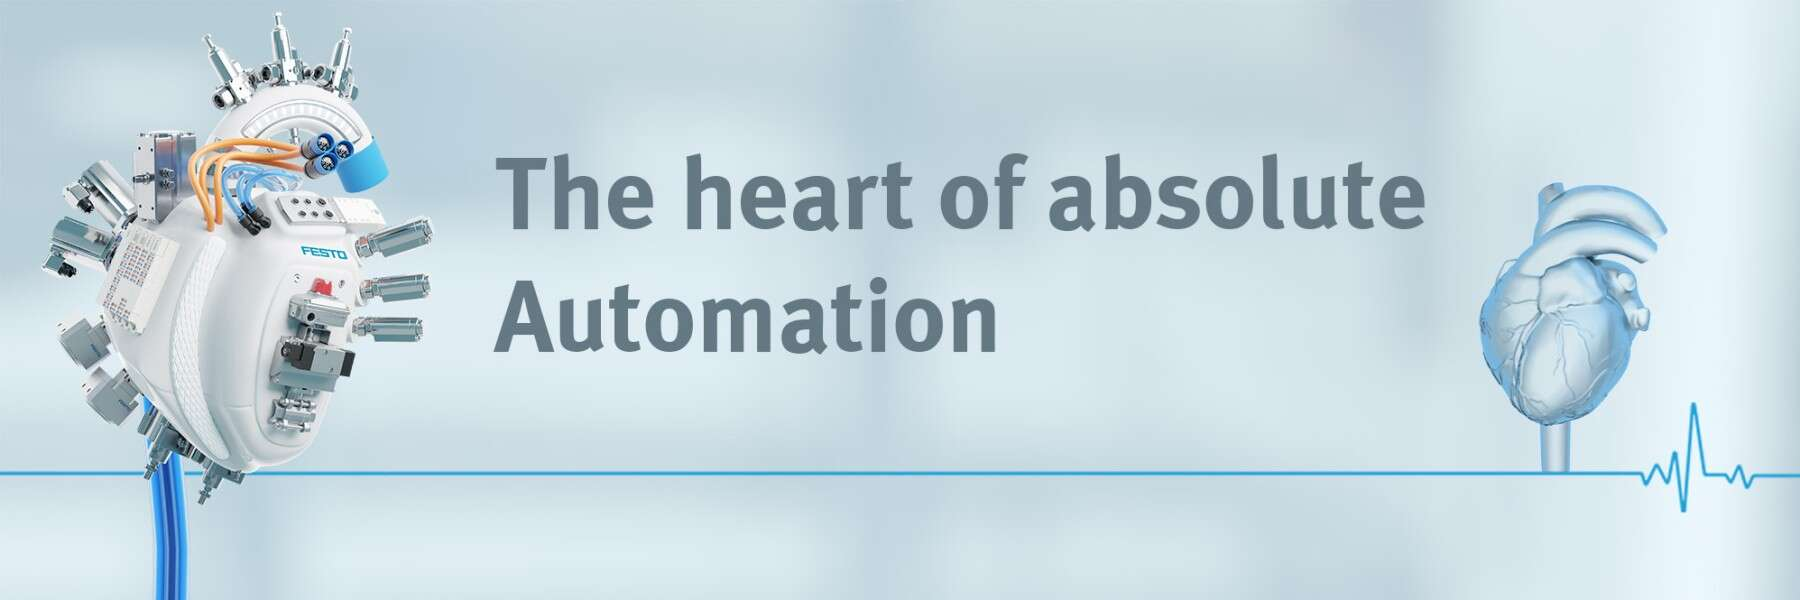 Heart of absolute automation